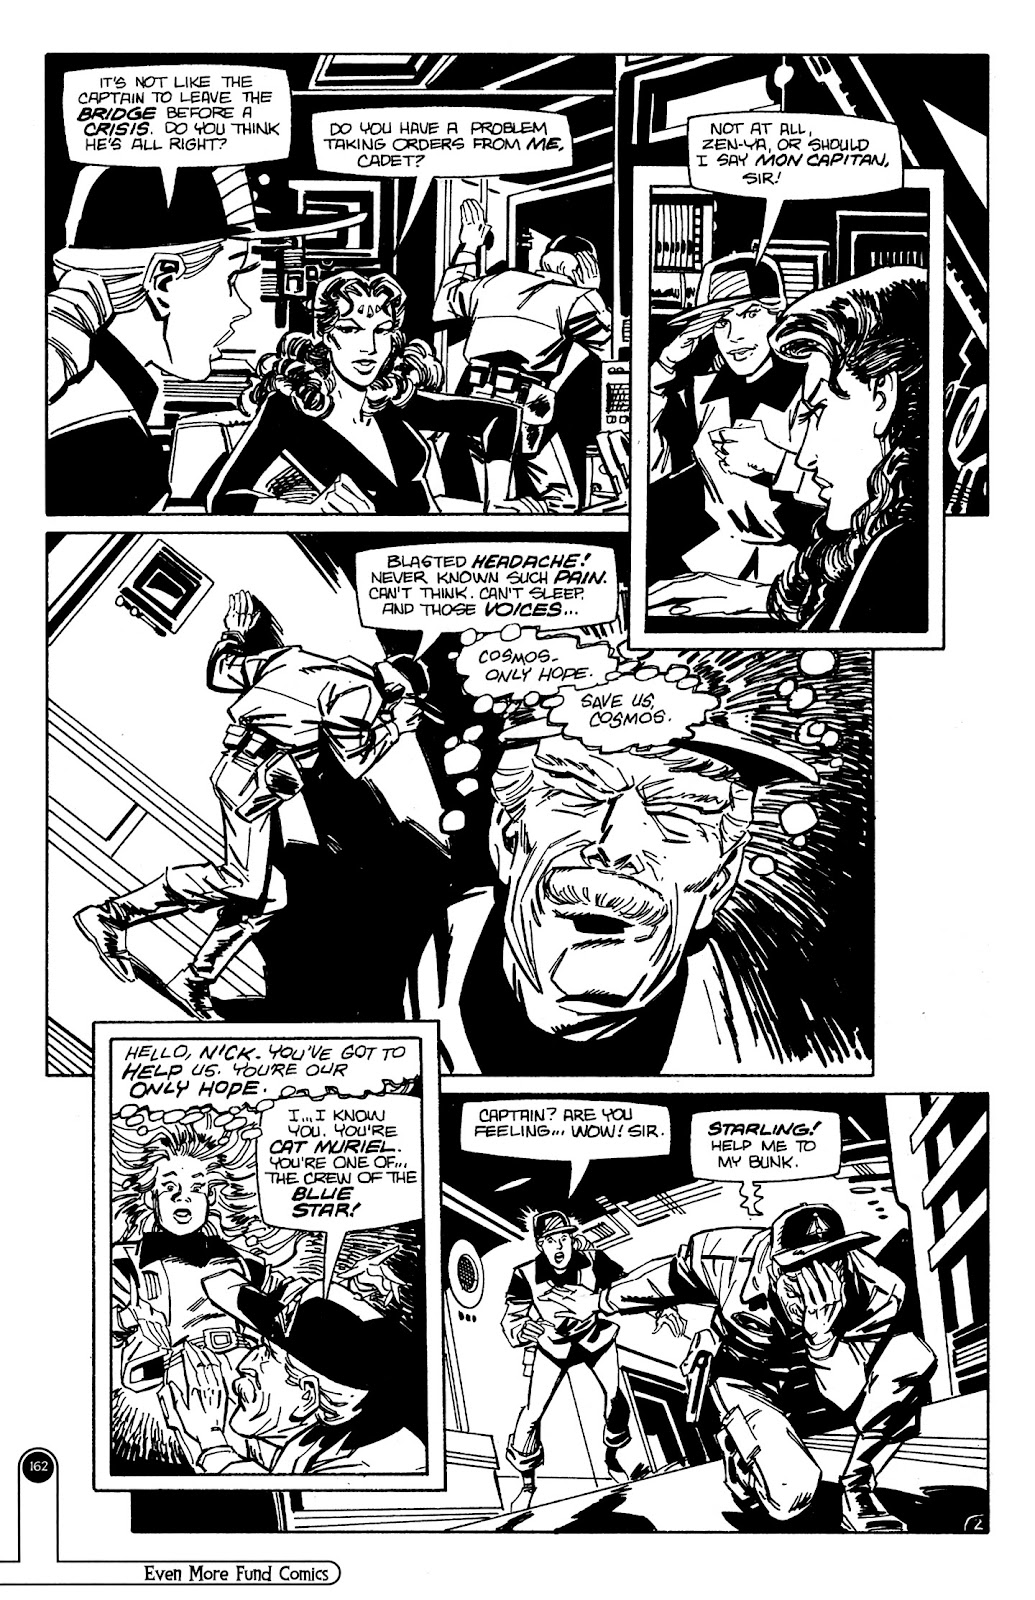 Read online Even More Fund Comics comic -  Issue # TPB (Part 2) - 65